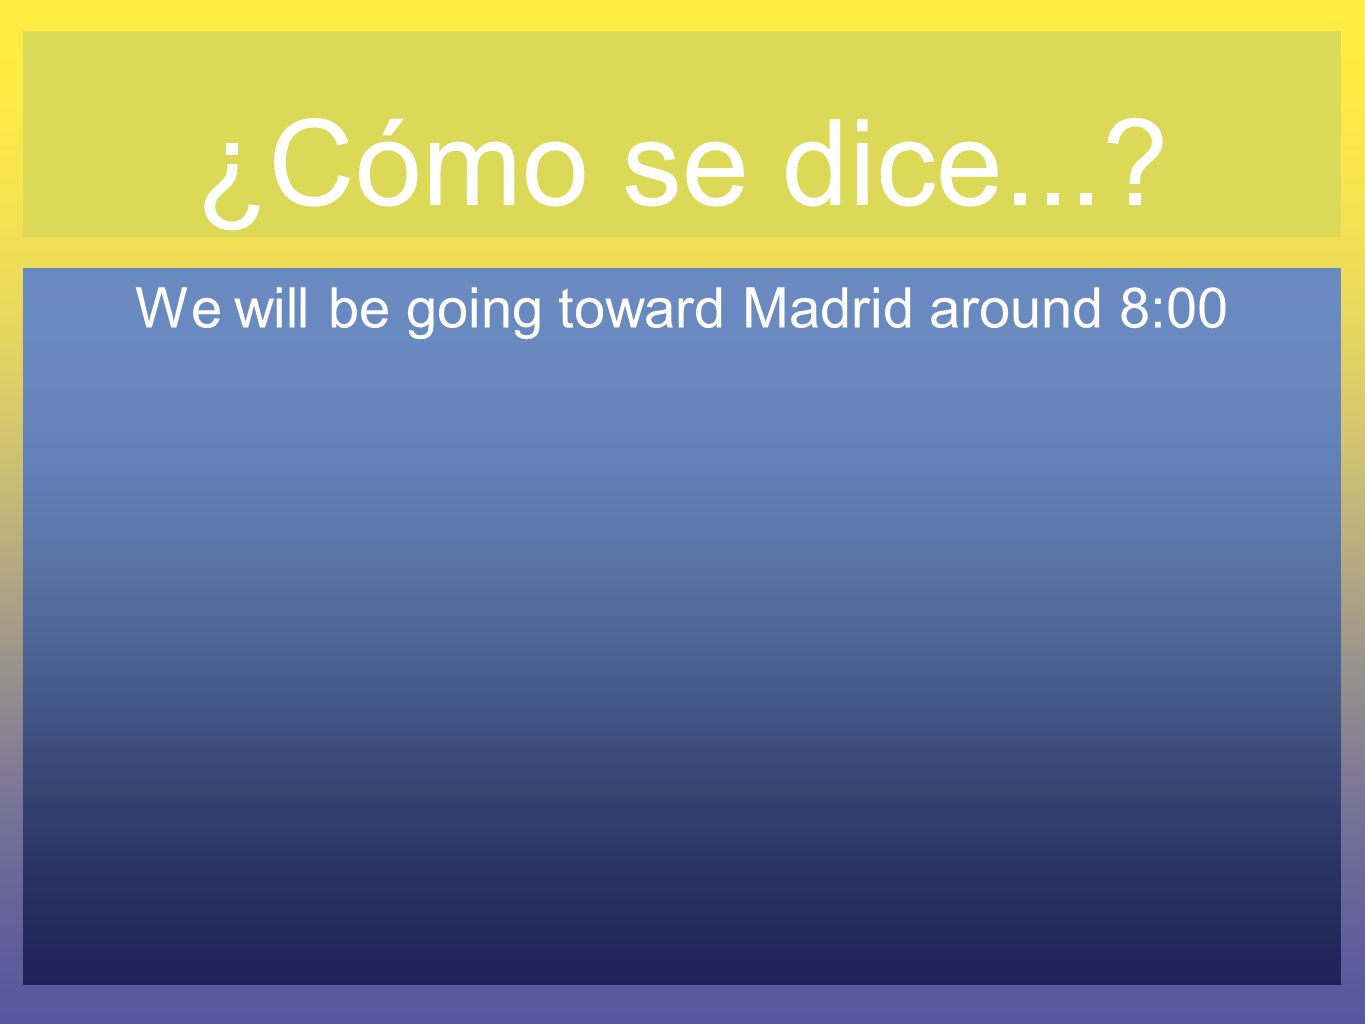 We will be going toward Madrid around 8:00